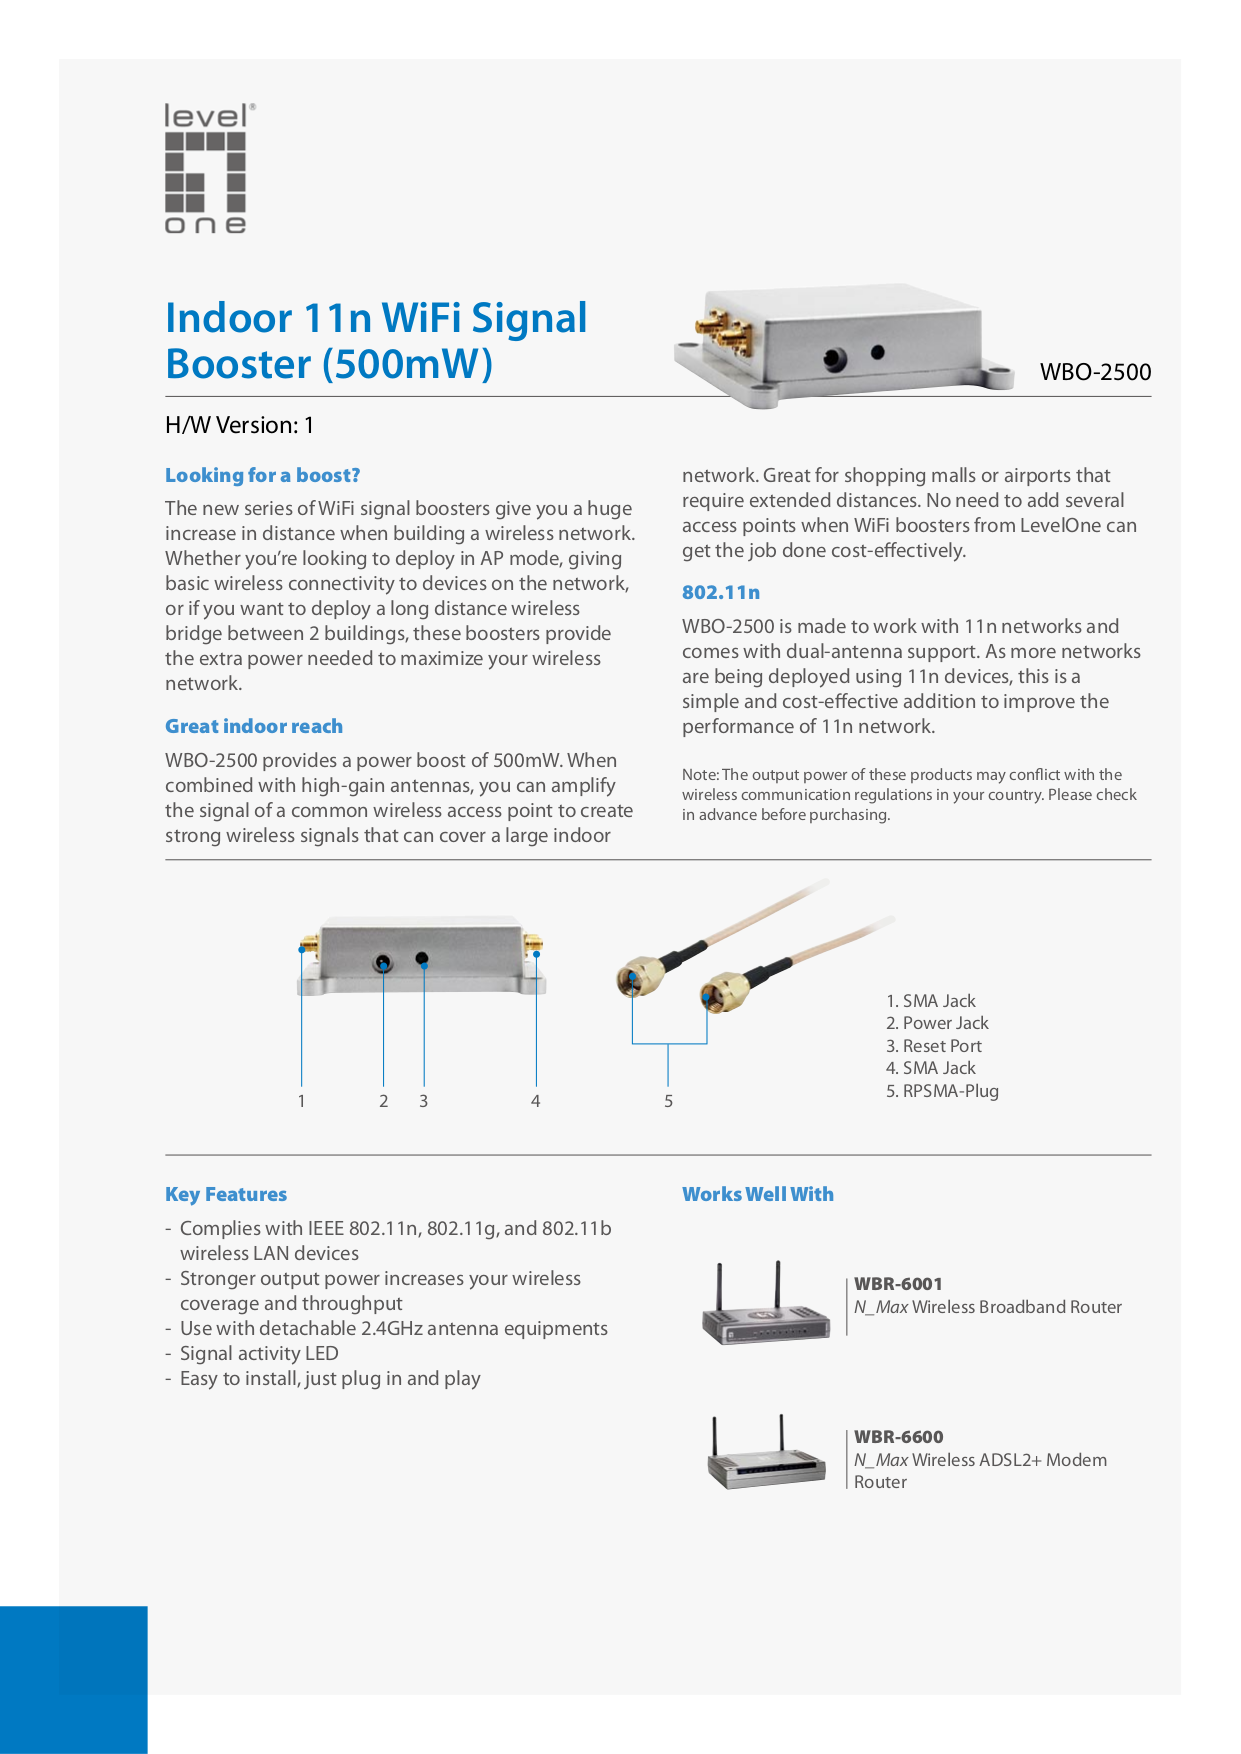 pdf for LevelOne Other WBO-2500 WiFi Signal Boosters manual